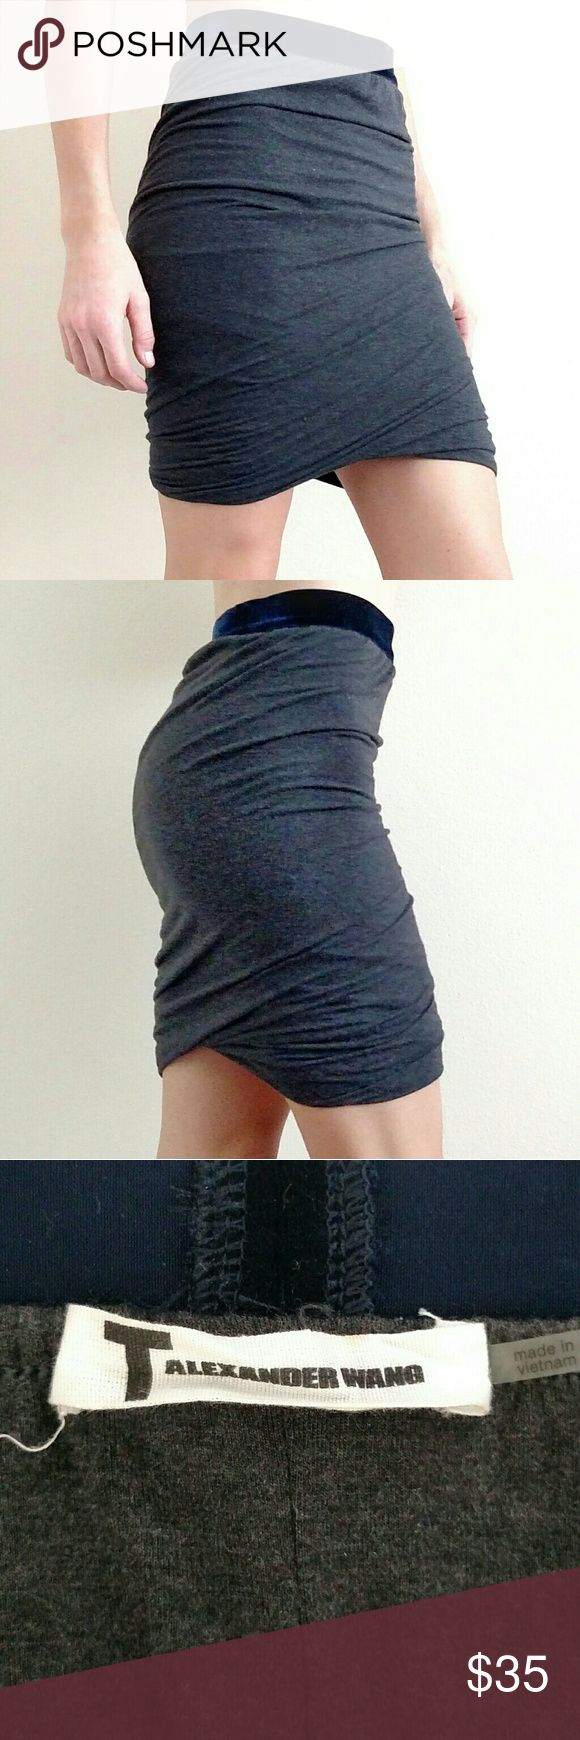 Alexander Wang Jersey Knit Mini Skirt T by Alexander Wang Jersey knit marled gray twist miniskirt with navy blue velvet waistband. Bubble hem. Figure flattering, form firing miniskirt they can be worn shorter for a sexier going out look or slightly longer for a more classy pencil skirt look. Excellent condition. Alexander Wang Skirts Mini